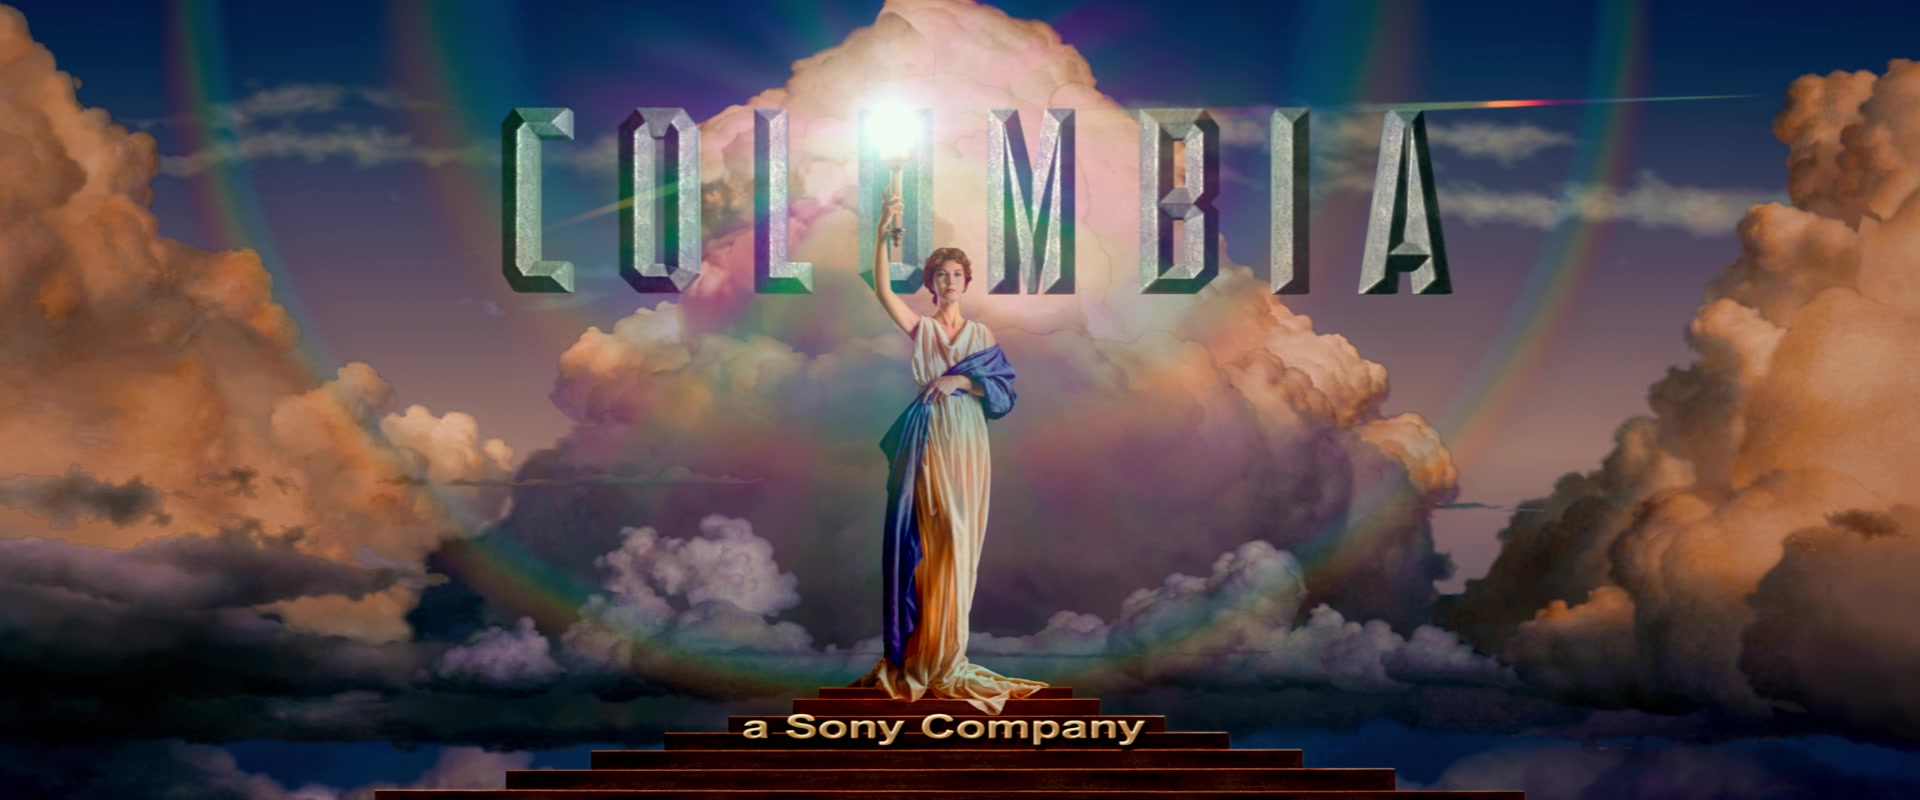 File:Columbia Pictures (logo).jpg